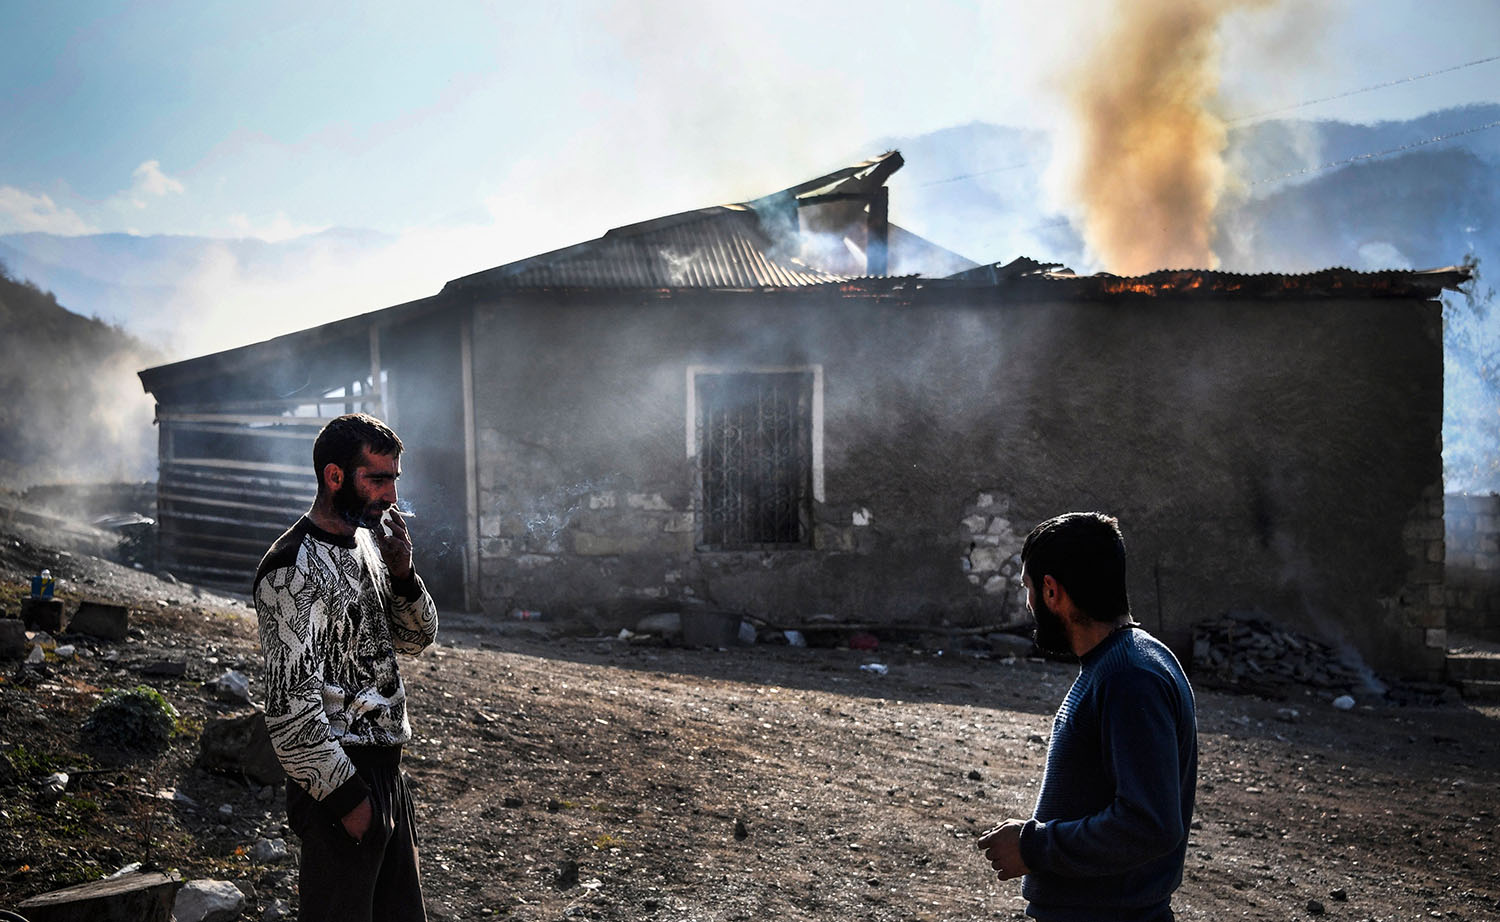 Residents look at burning houses in the village of Charektar outside the town of Kalbajar on Nov. 14. Villagers set fire to their houses before fleeing to Armenia as parts of the territory are handed over to Azerbaijan.